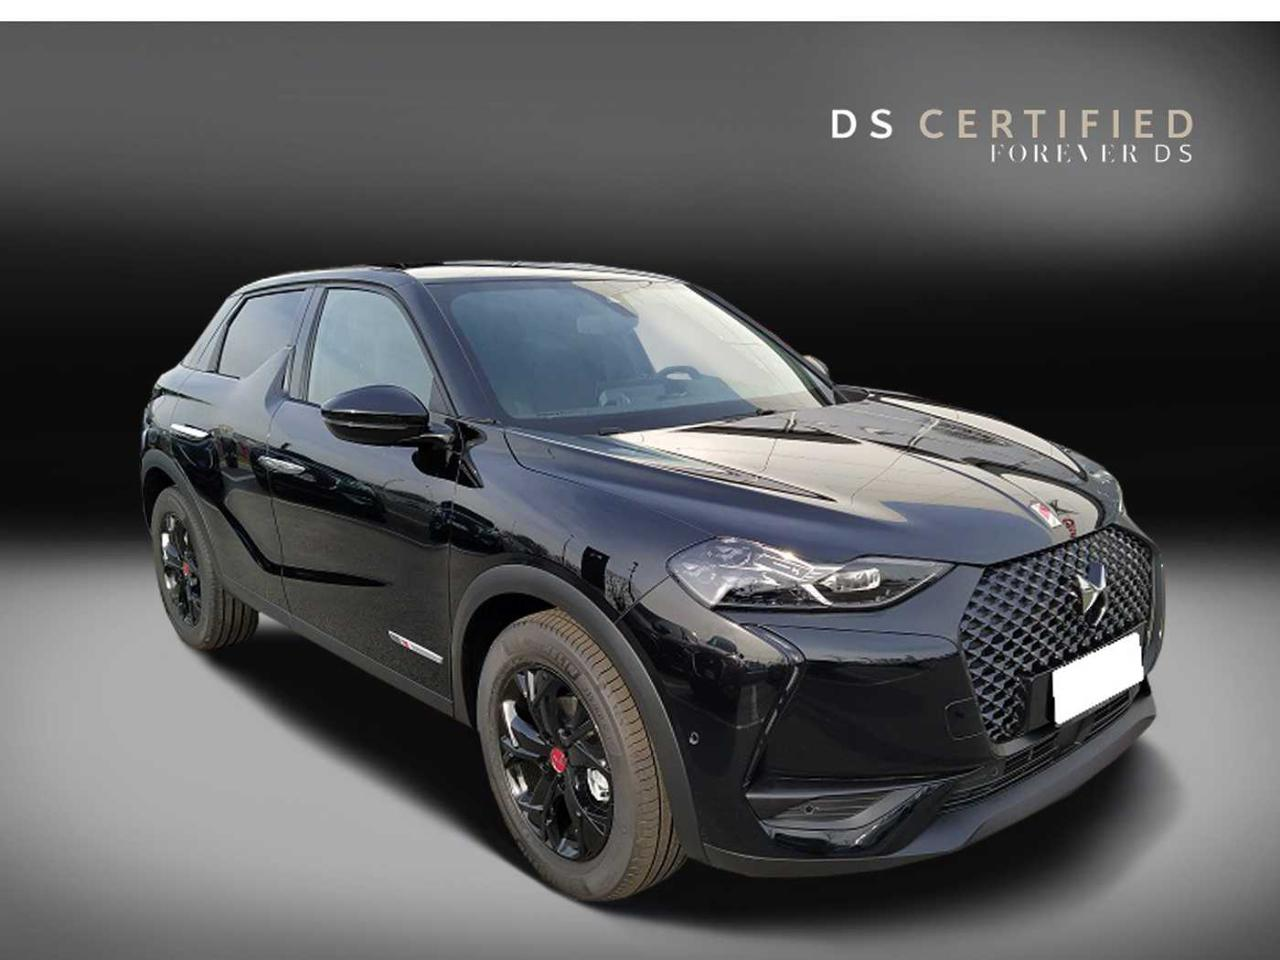 Ds DS 3 Crossback Automobiles DS 3 Crossback 1.5 BlueHDi 100cv Perfo